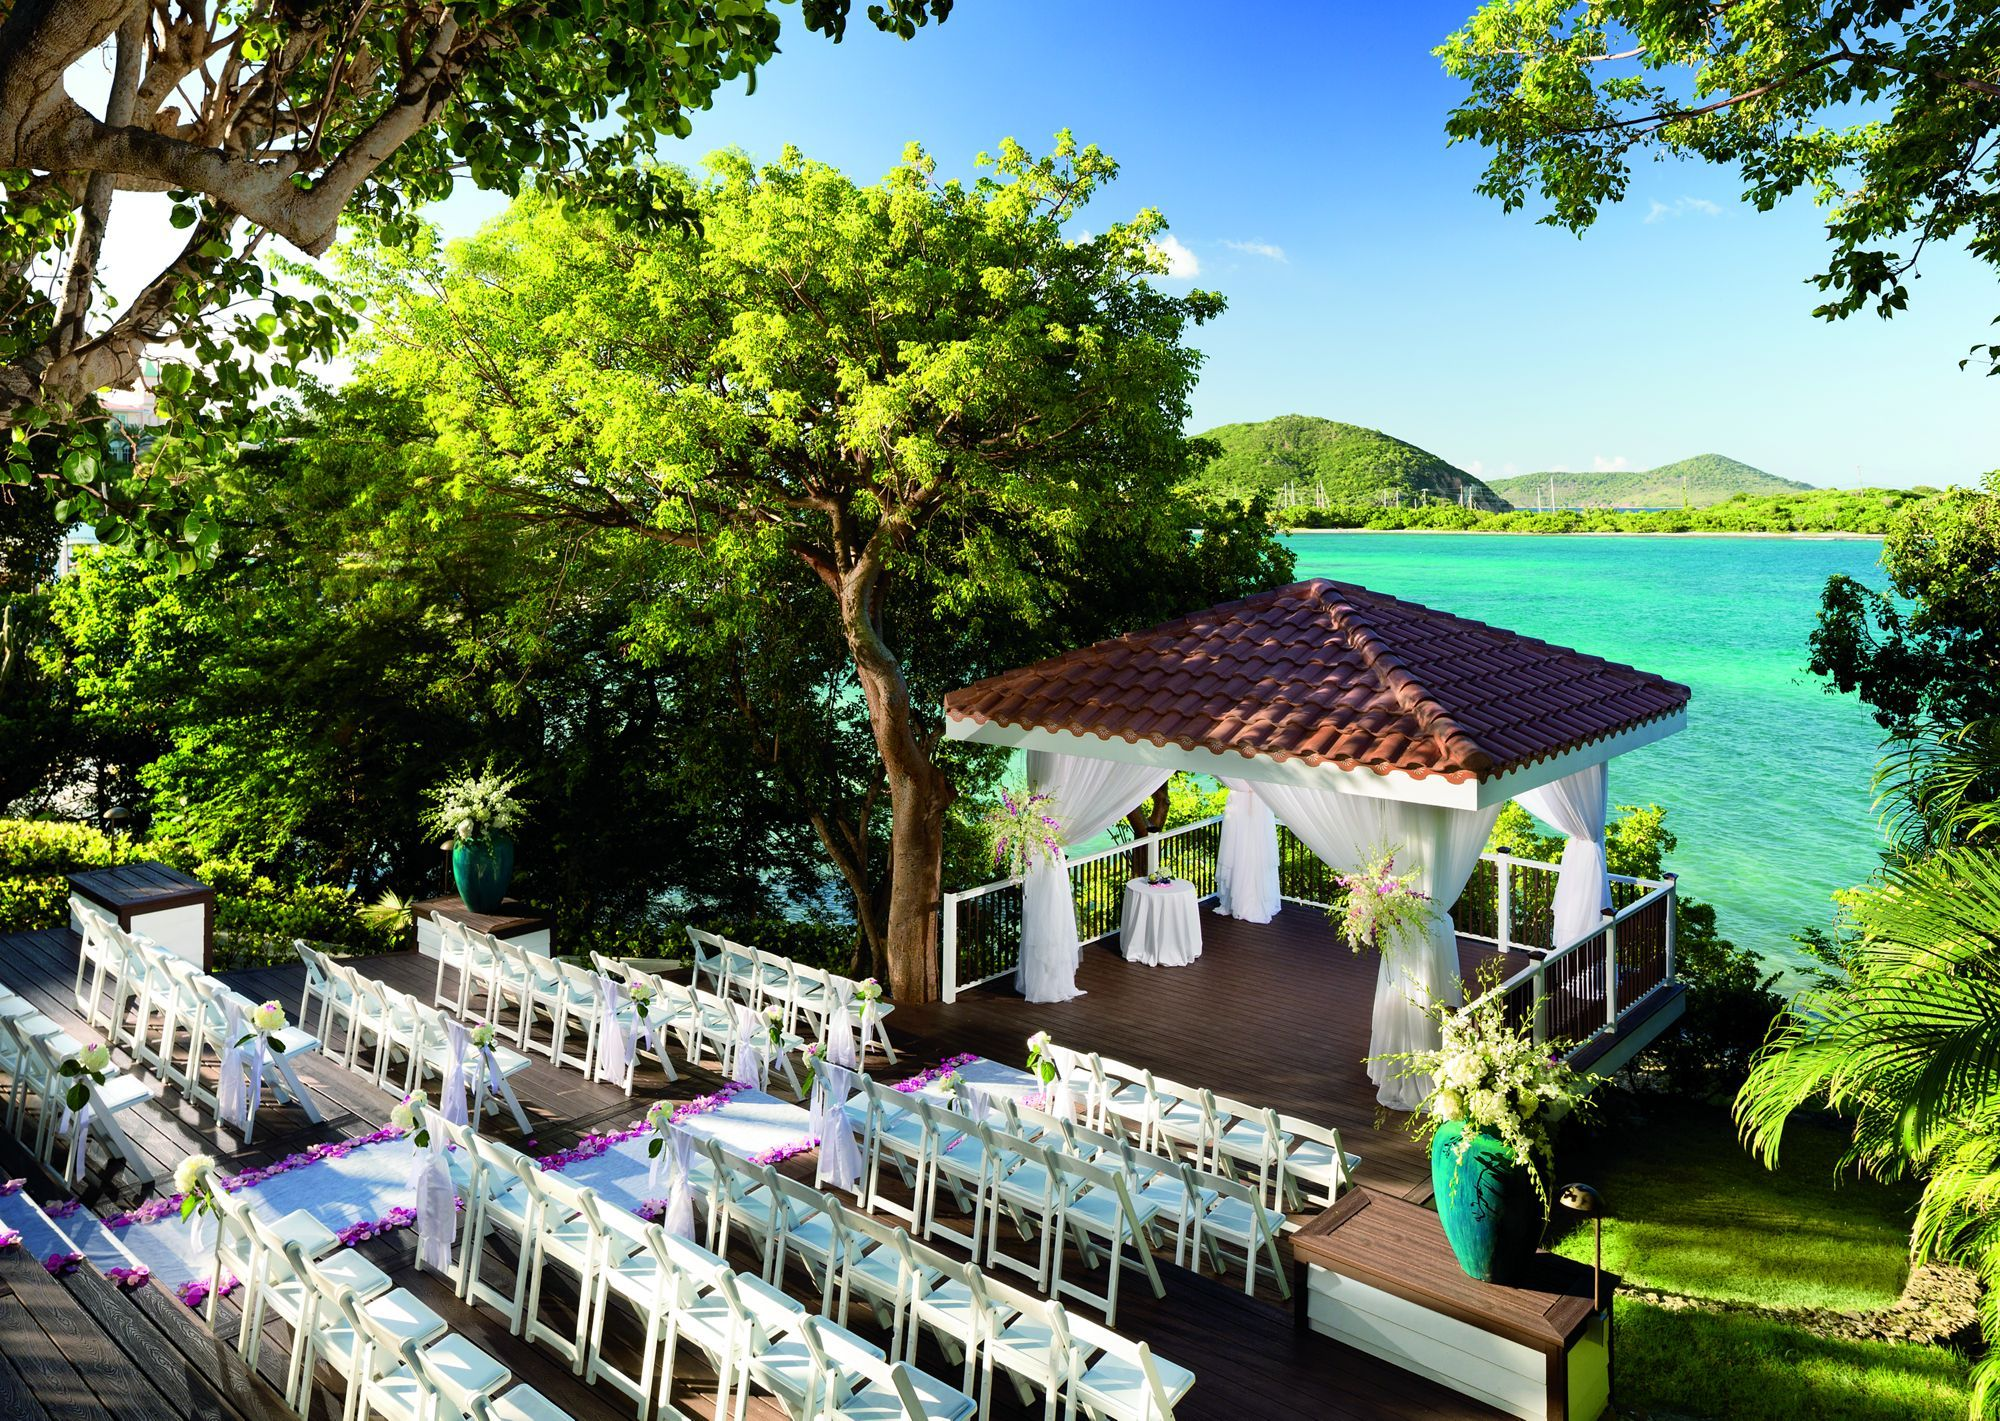 St Thomas Map Virgin Islands%0A The     best St thomas wedding ideas on Pinterest   Time in virgin islands  St  thomas virgin islands and Mac locations